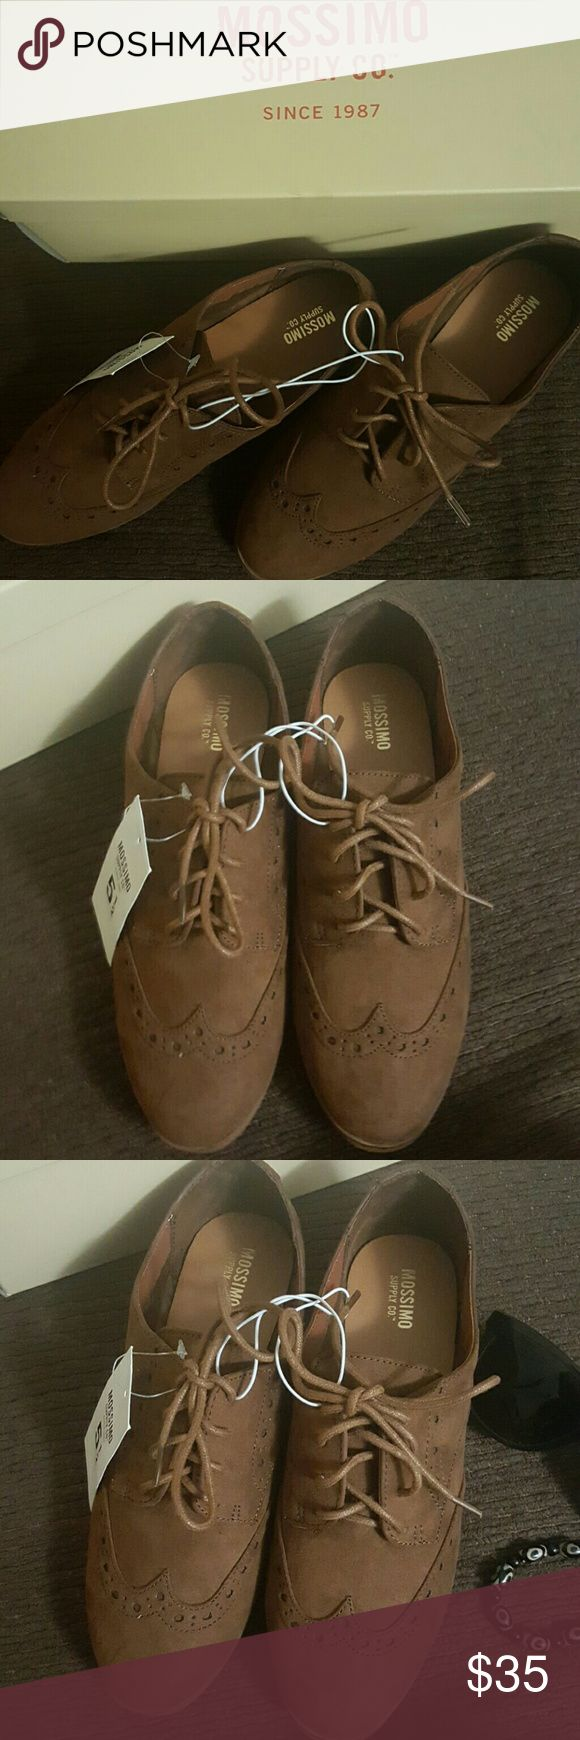 Mossimo Women's Nannie Oxfords-chestnut size 5.5 NWT-Faux suede Oxford with brogue detail, Eyelet lacing, Cushioned insole, non-marking outsole A modern take on the classic brogue, these Women's Nannie Oxfords breathe new life into a timeless style. With a faux-suede upper, lace-up vamp and tapered almond toe, these dapper flats can be dressed up or down with ease--though for real deal heritage style, nothing beats fuzzy tights and a plaid wool skirt.  Never been use, with box! Cool shoes…